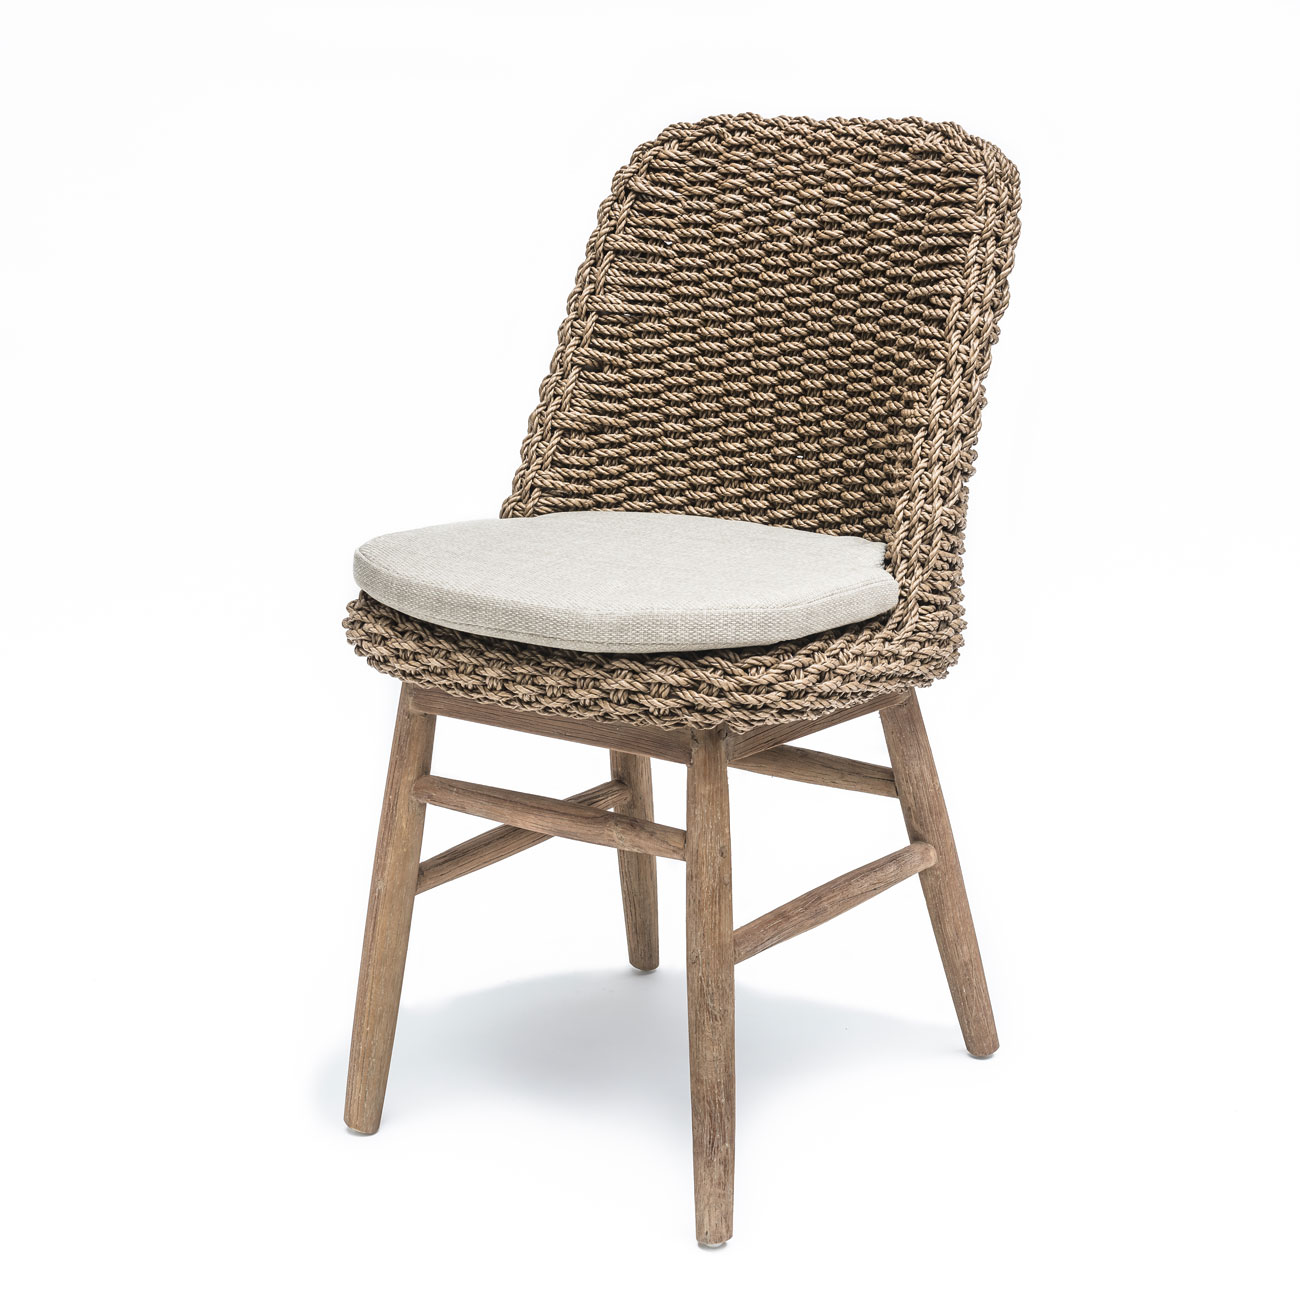 Rattan Dining Chairs: Gommaire Sienna Teak & Rattan Dining Chair